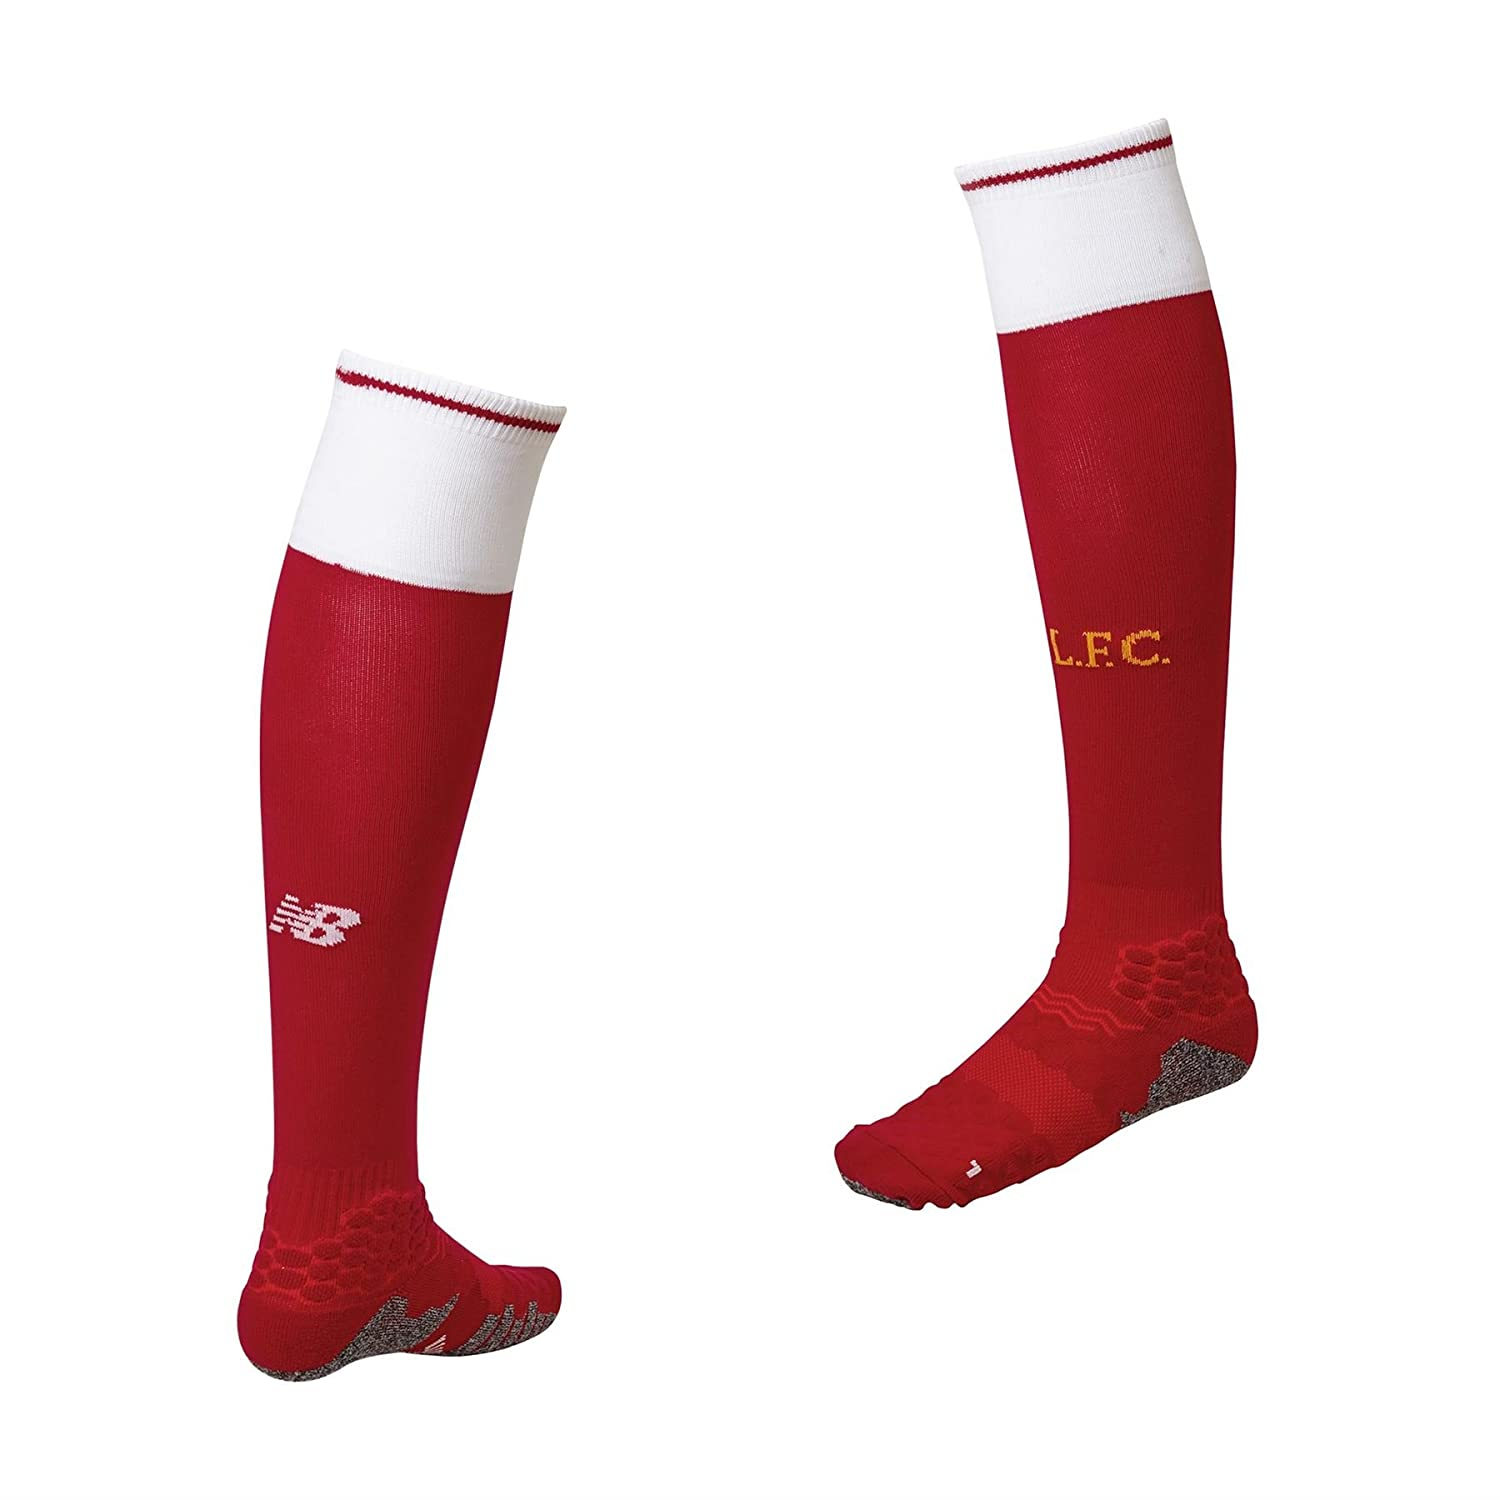 2017-2018 Liverpool Home Socks (Red) B071VG94KZRed Medium 6-8 UK Foot